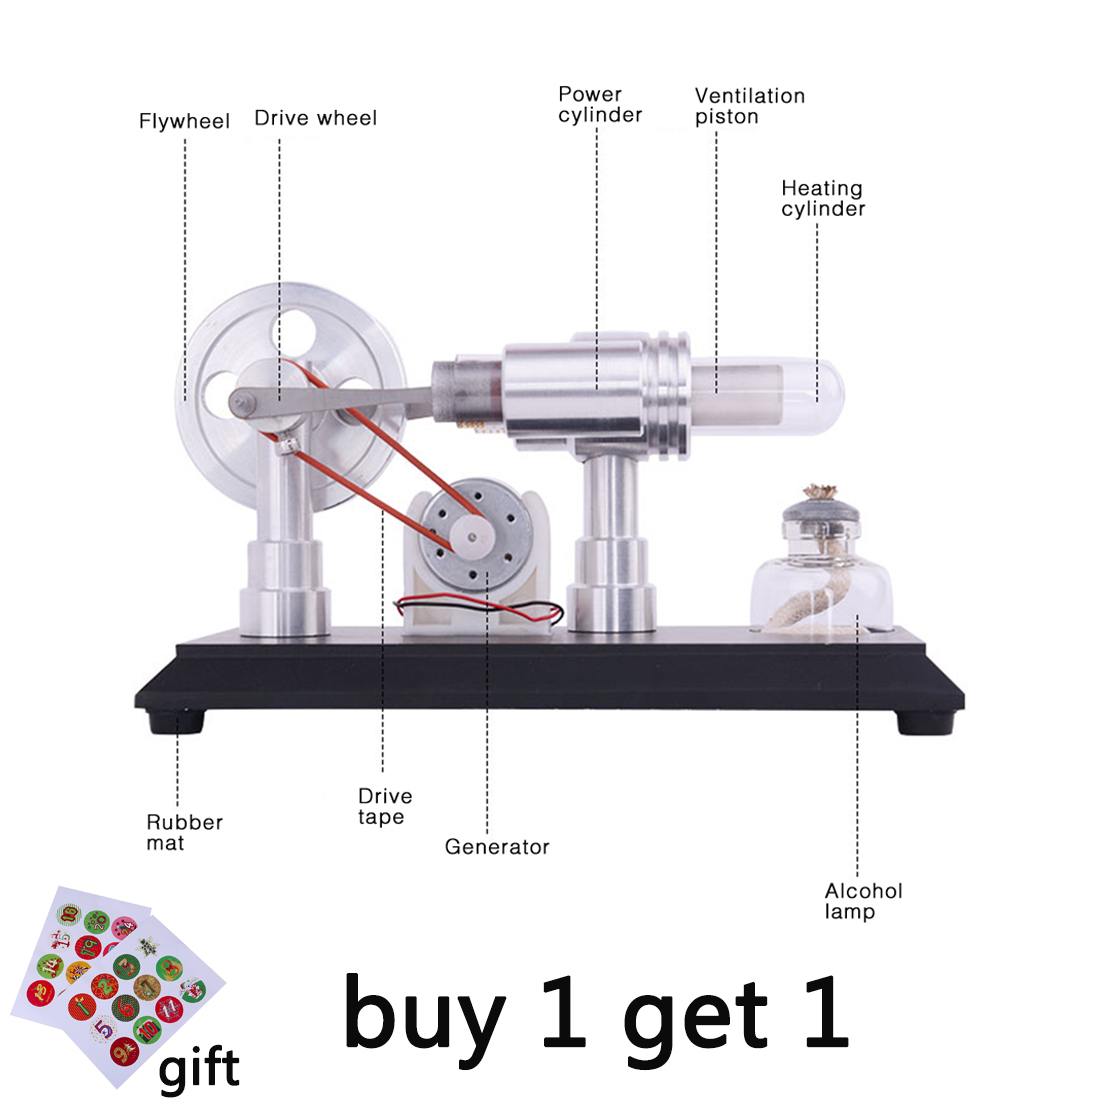 Double cylinder Micro DIY Stirling Engine External Combustion Engine School Demonstration Early Learning Education Toys For Kids-in Model Building Kits from Toys & Hobbies